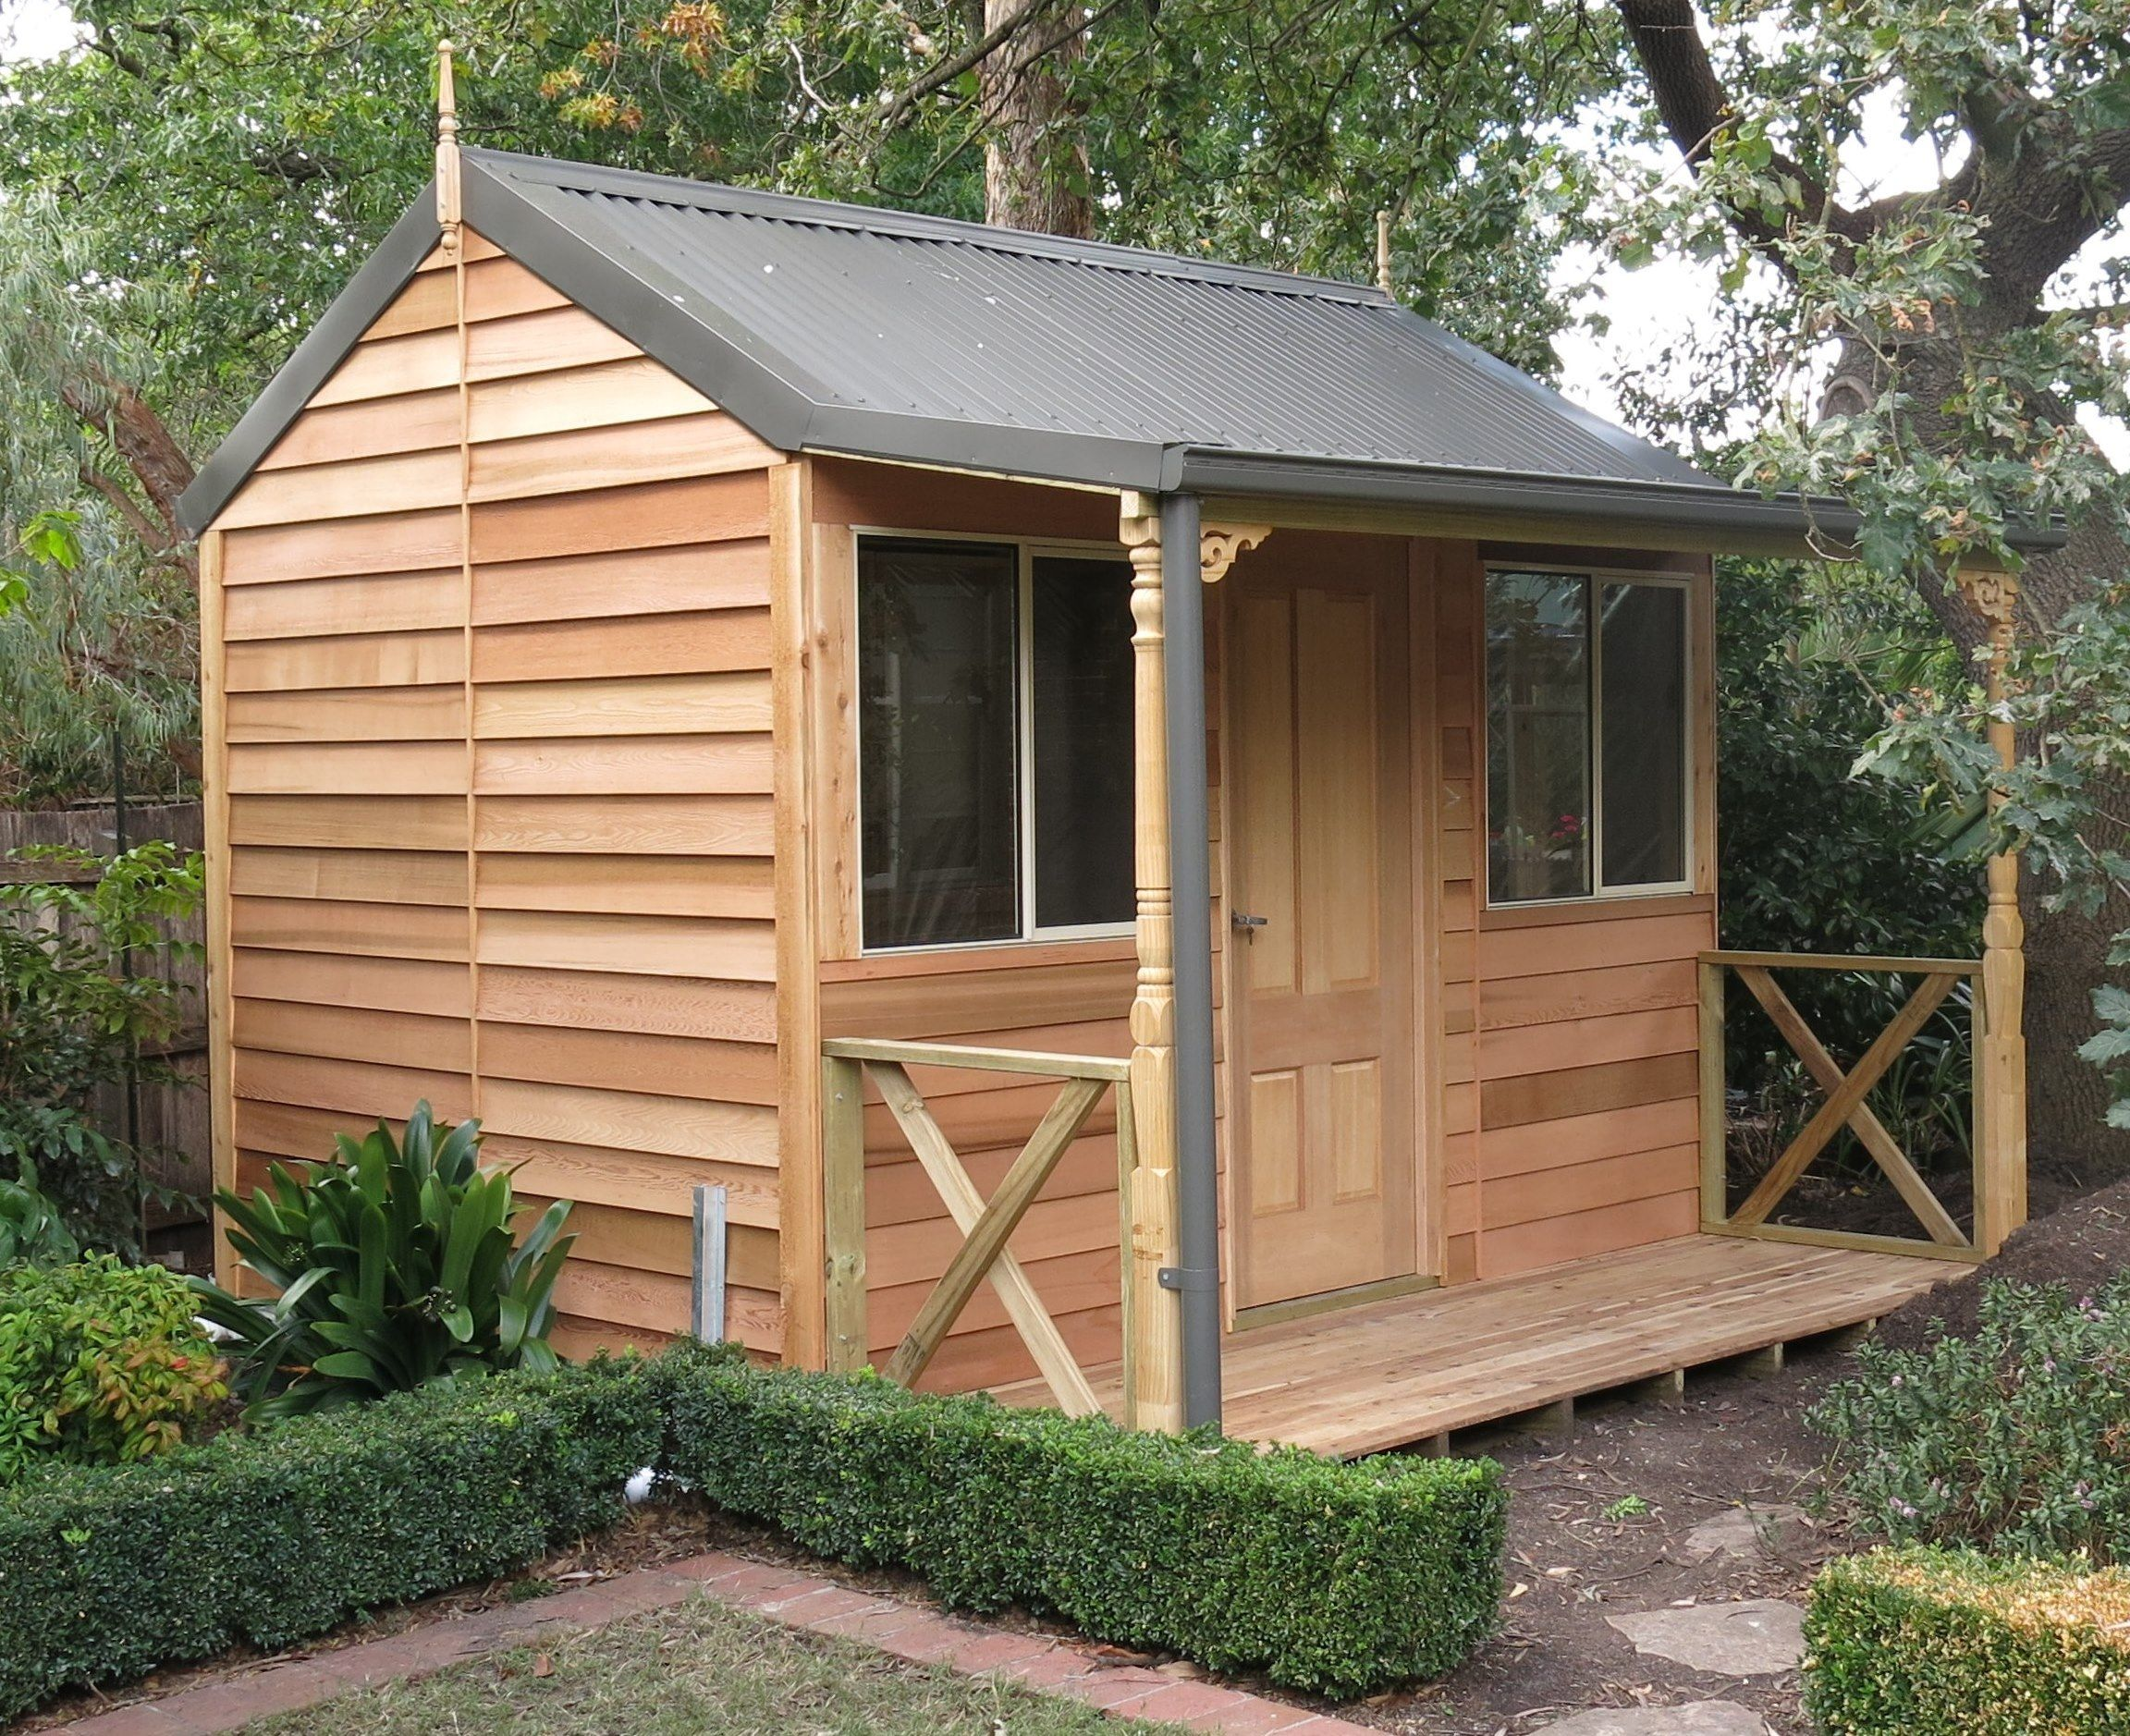 sheds product shed less for brown garden home outdoor free storage today lifetime shipping overstock tan x